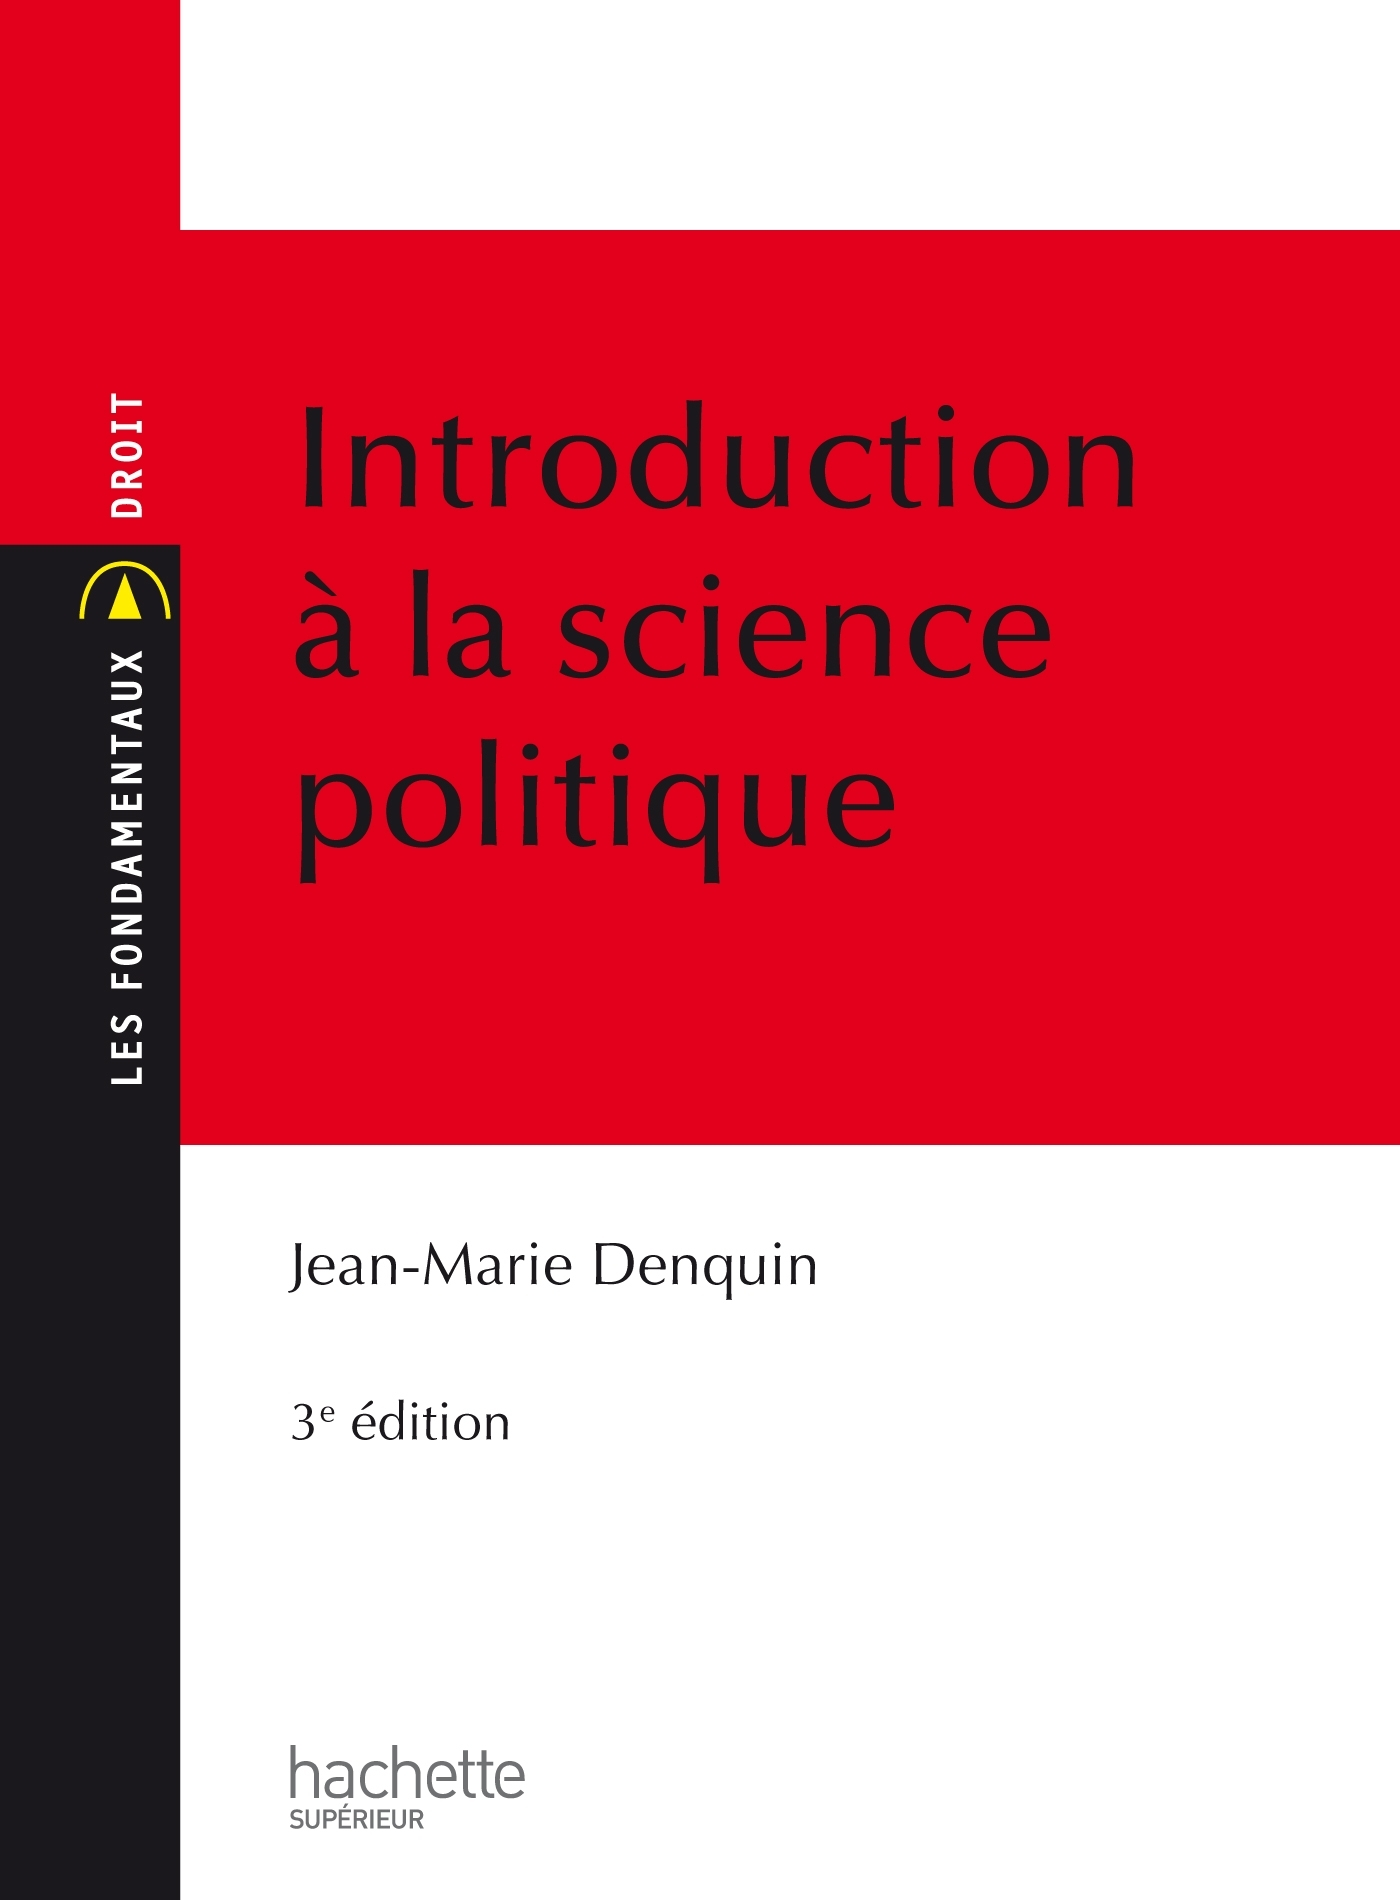 INTRODUCTION A LA SCIENCE POLITIQUE